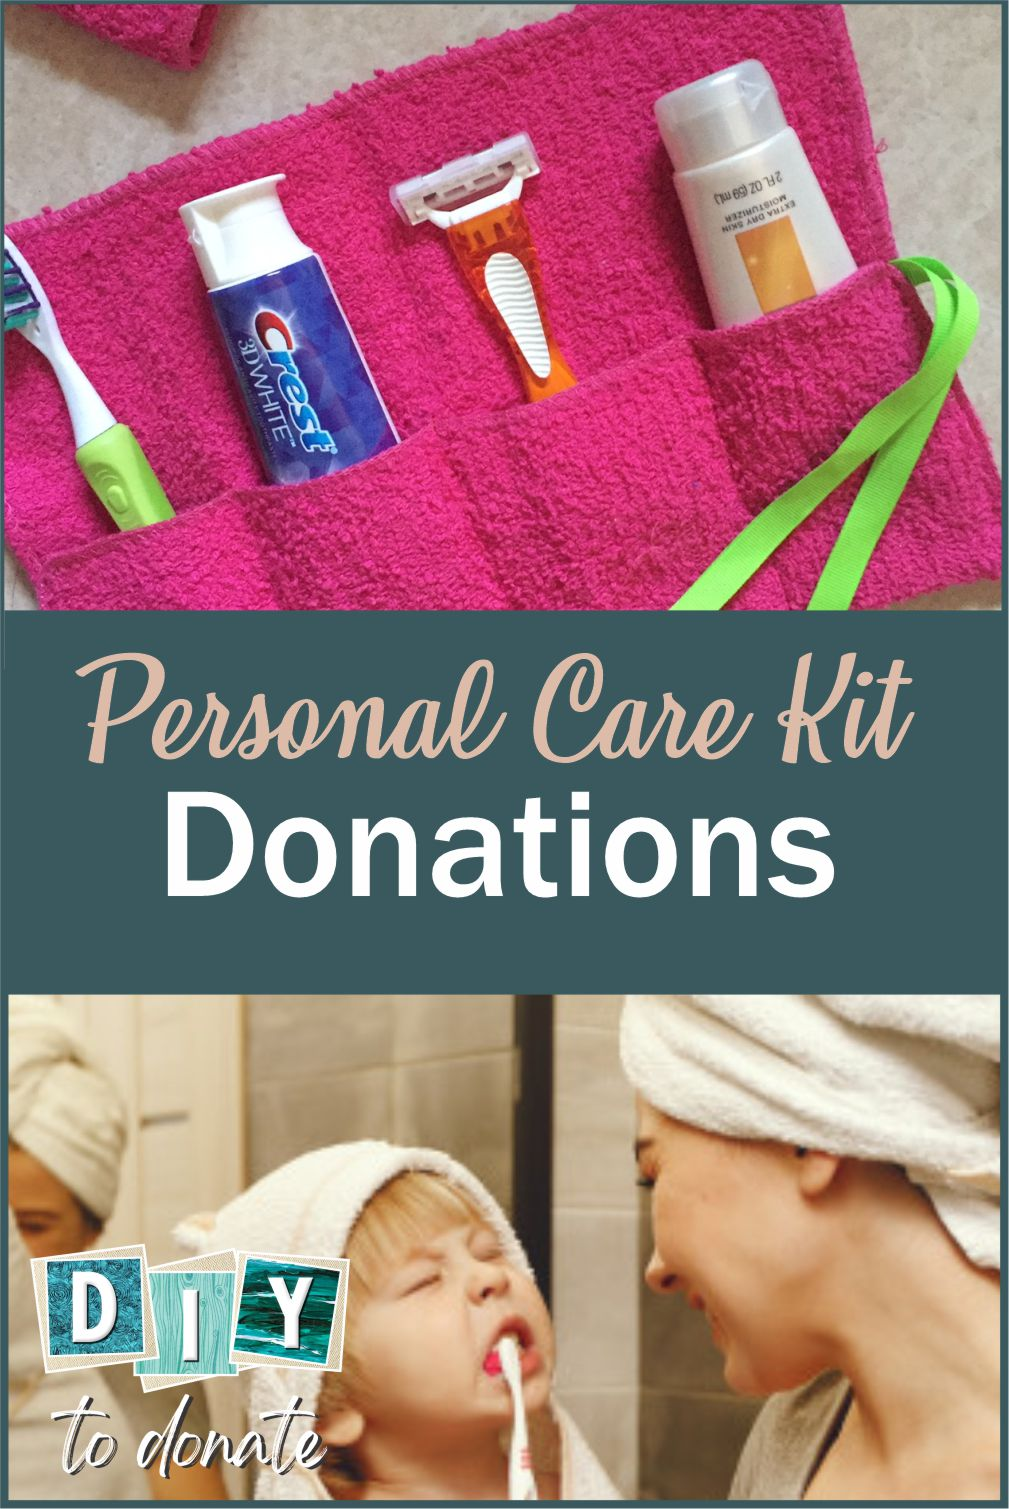 Personal Care Kits to Donate Learn how to make easy DIY travel pouches for displaced people and find out where you can donate them to help someone in need. #diytodonate #carekit #DIY #travelpouches #washclothes #donate #personalcare